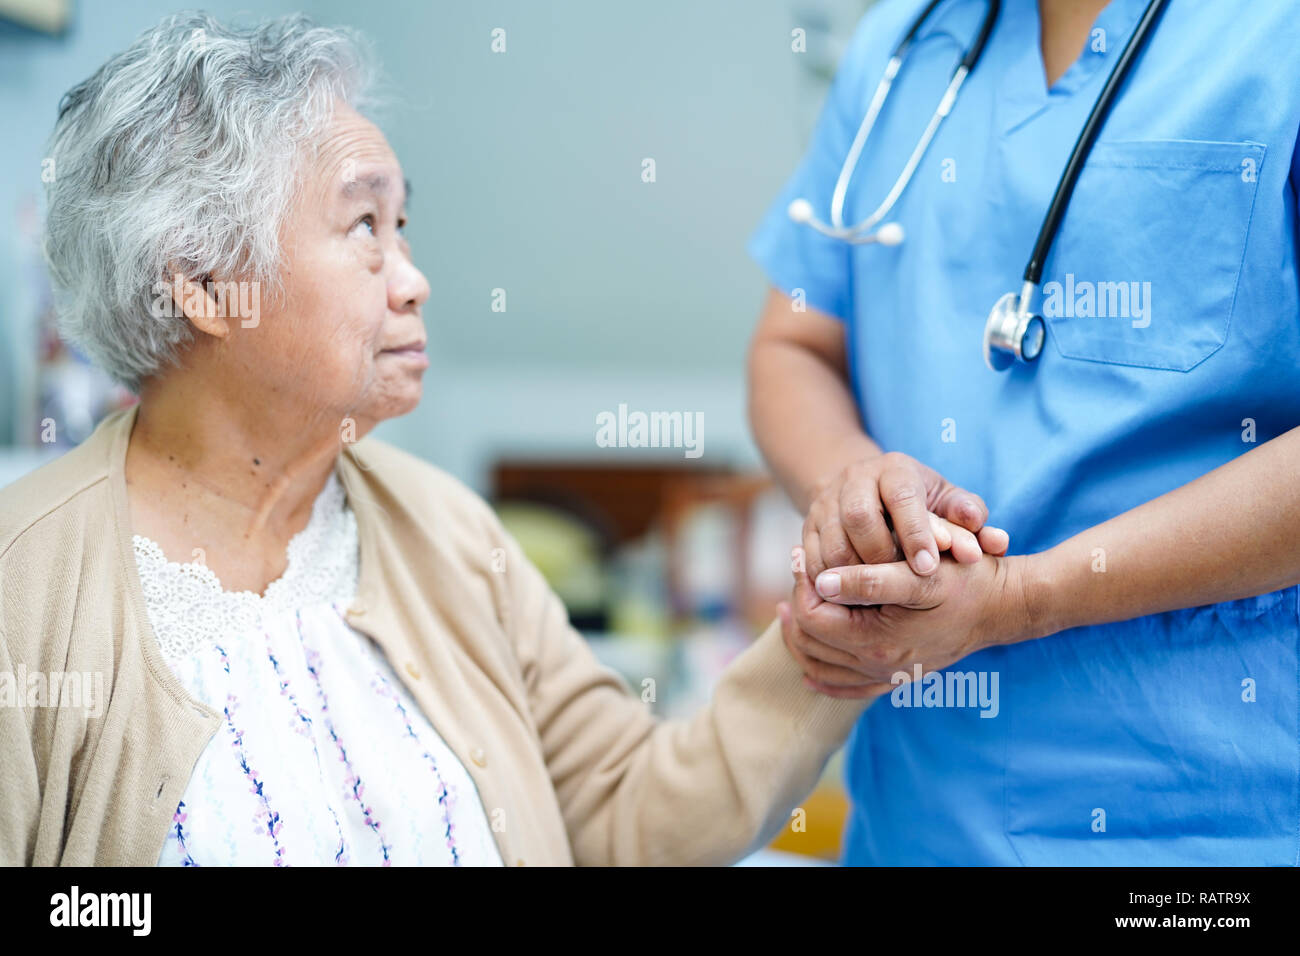 Holding Touching hands Asian senior or elderly old lady woman patient with love, care, helping, encourage and empathy at nursing hospital ward. Stock Photo